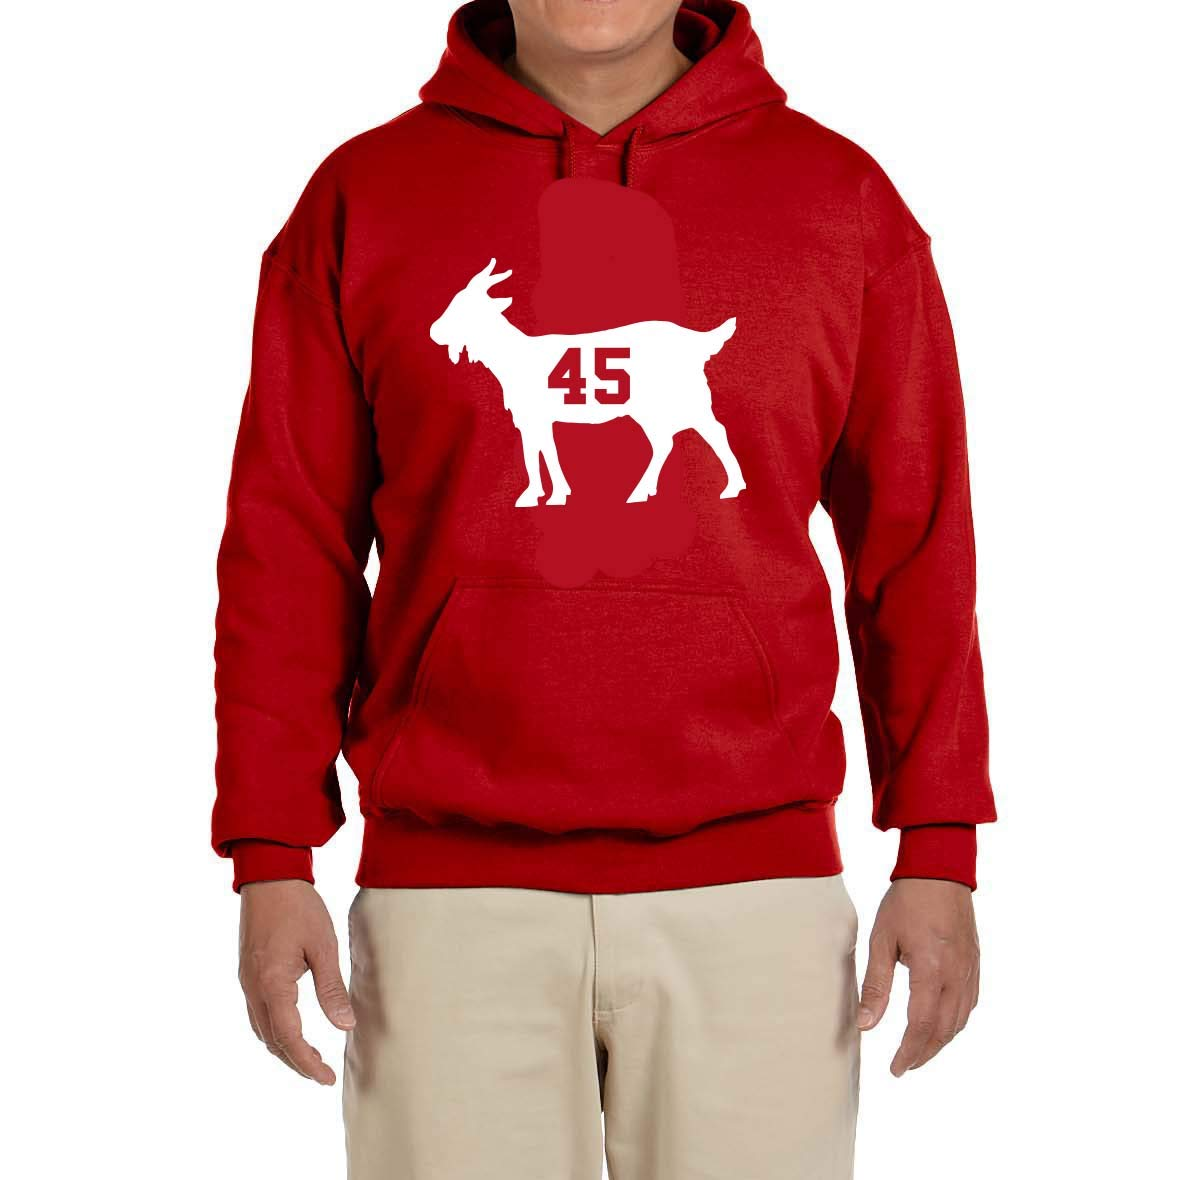 Red Griffin Goat Hooded Shirts